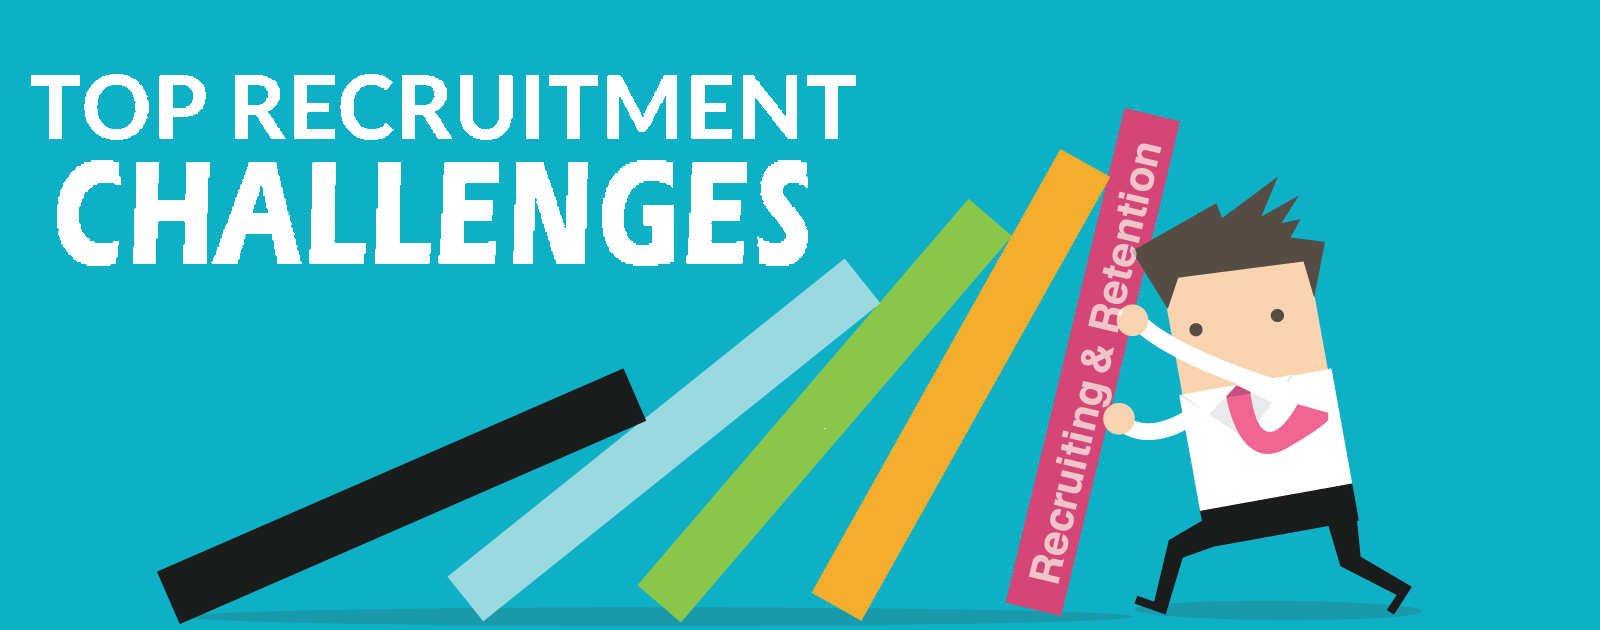 recruitment challenges for startups